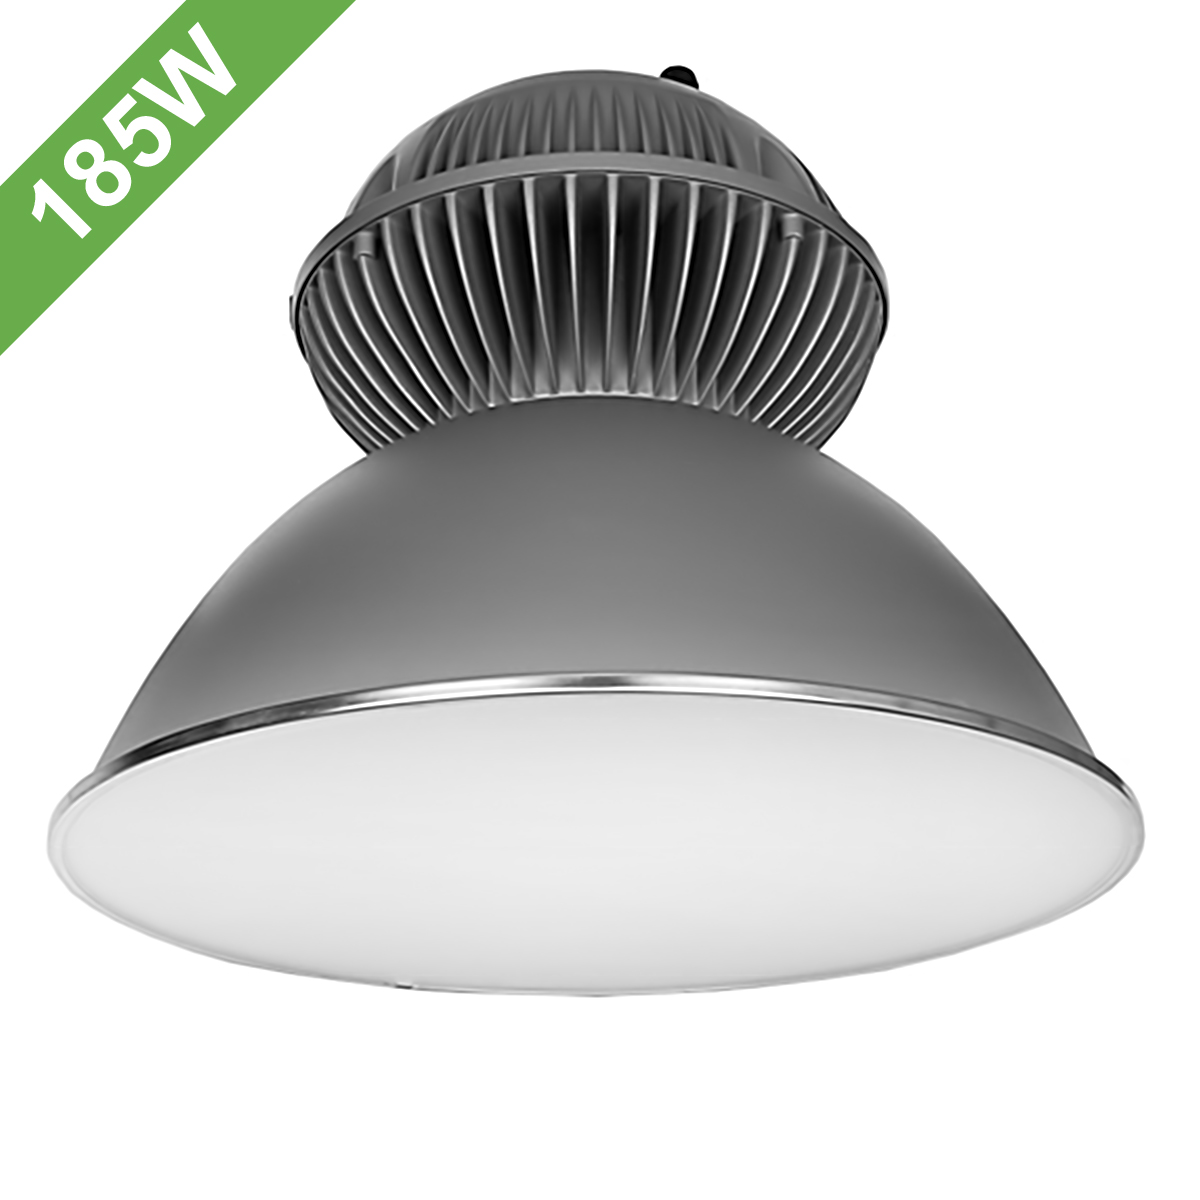 Lighting Ever Top Quality Led Fixtures 185w Led High Bay Light Fixture 185w High Bay Warehouse